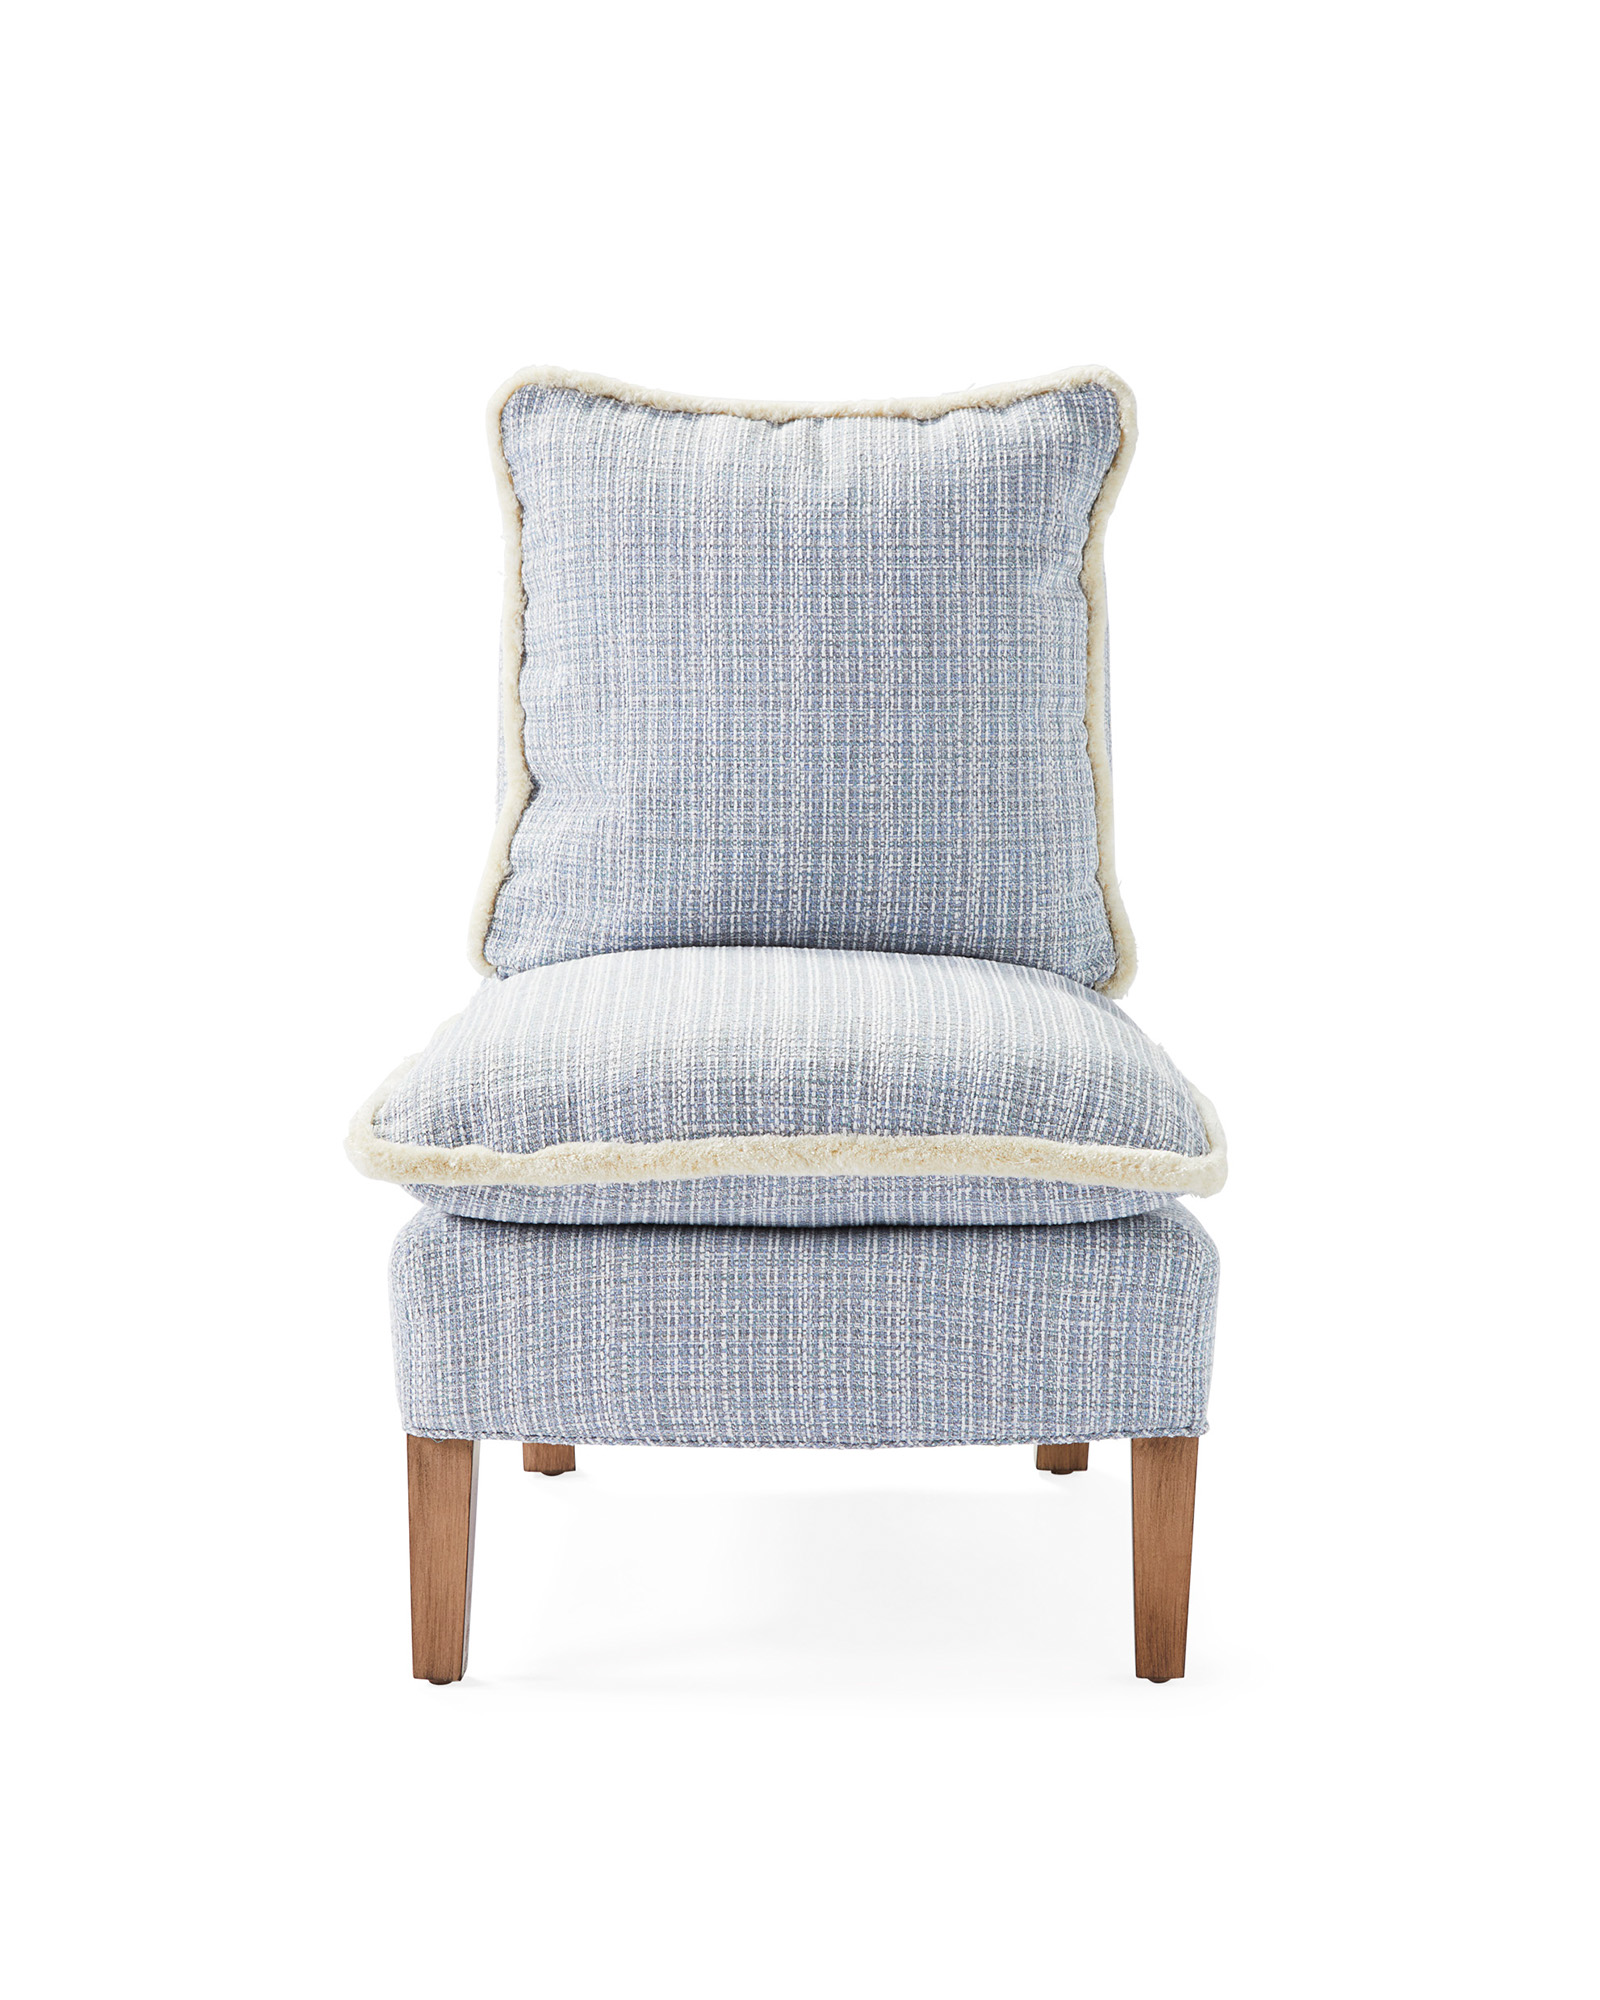 Watson Slipper Chair with Fringe, Perennials Rosemount Coastal Blue